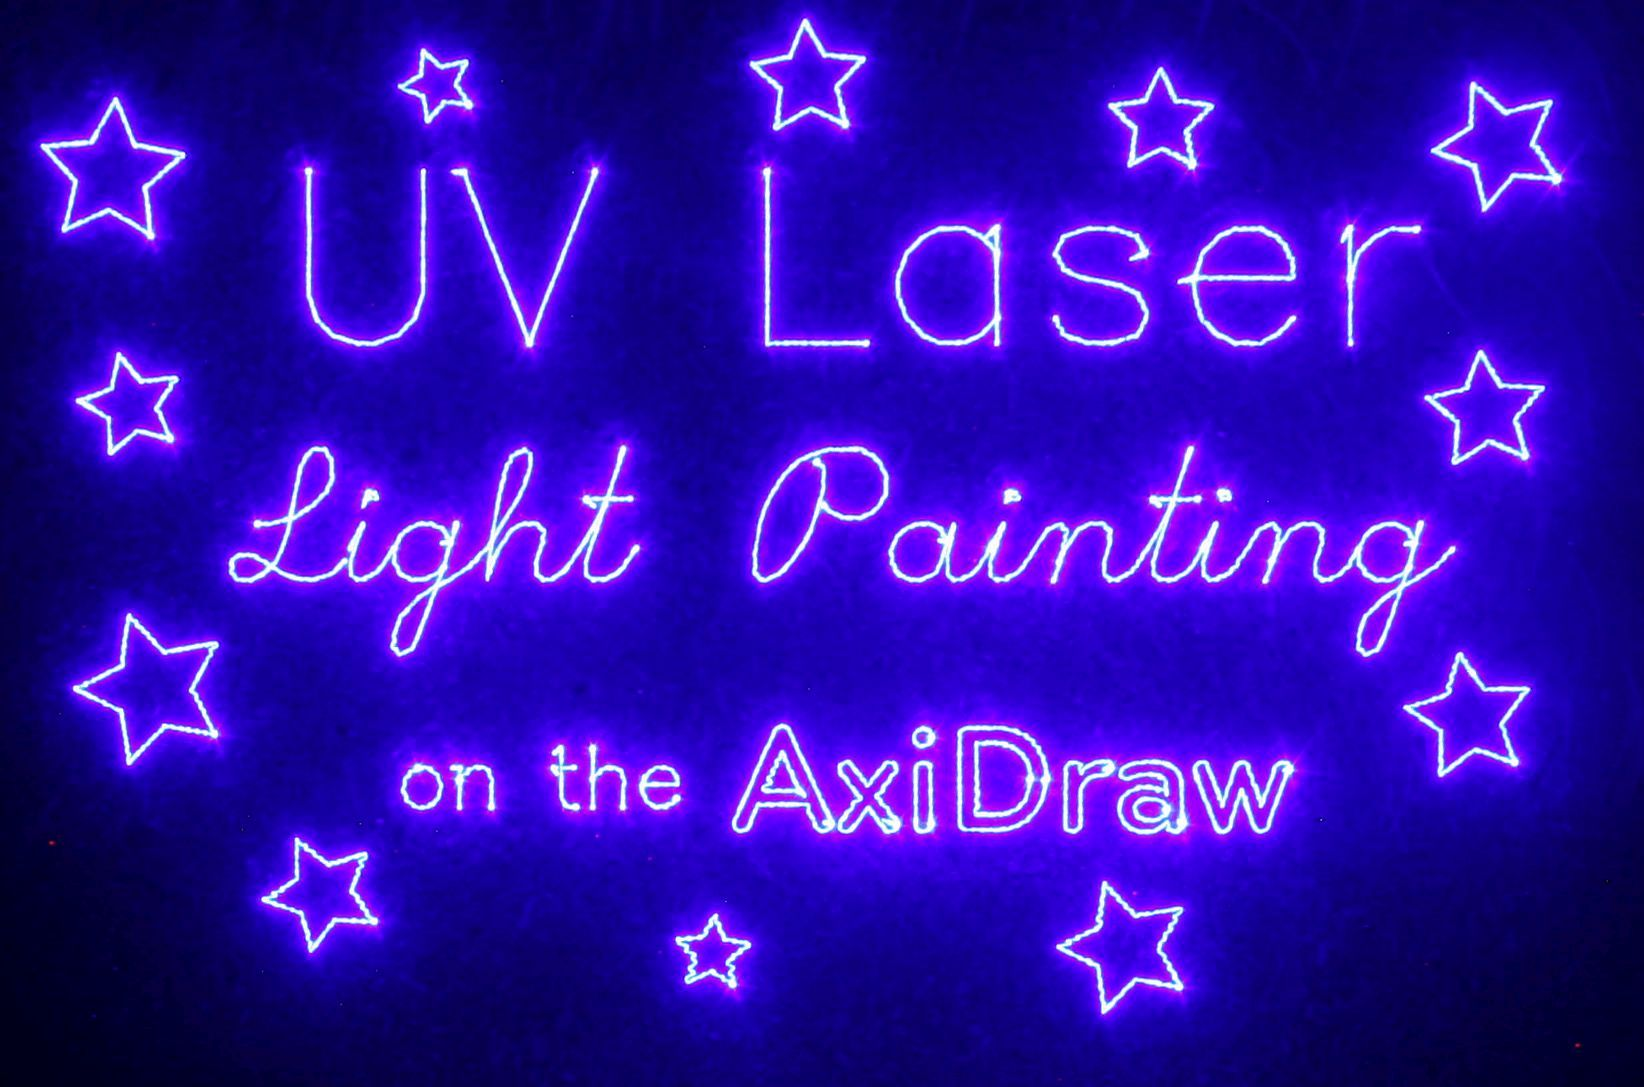 AxiDraw laser cutting, light painting and phosphorescent/glow in the